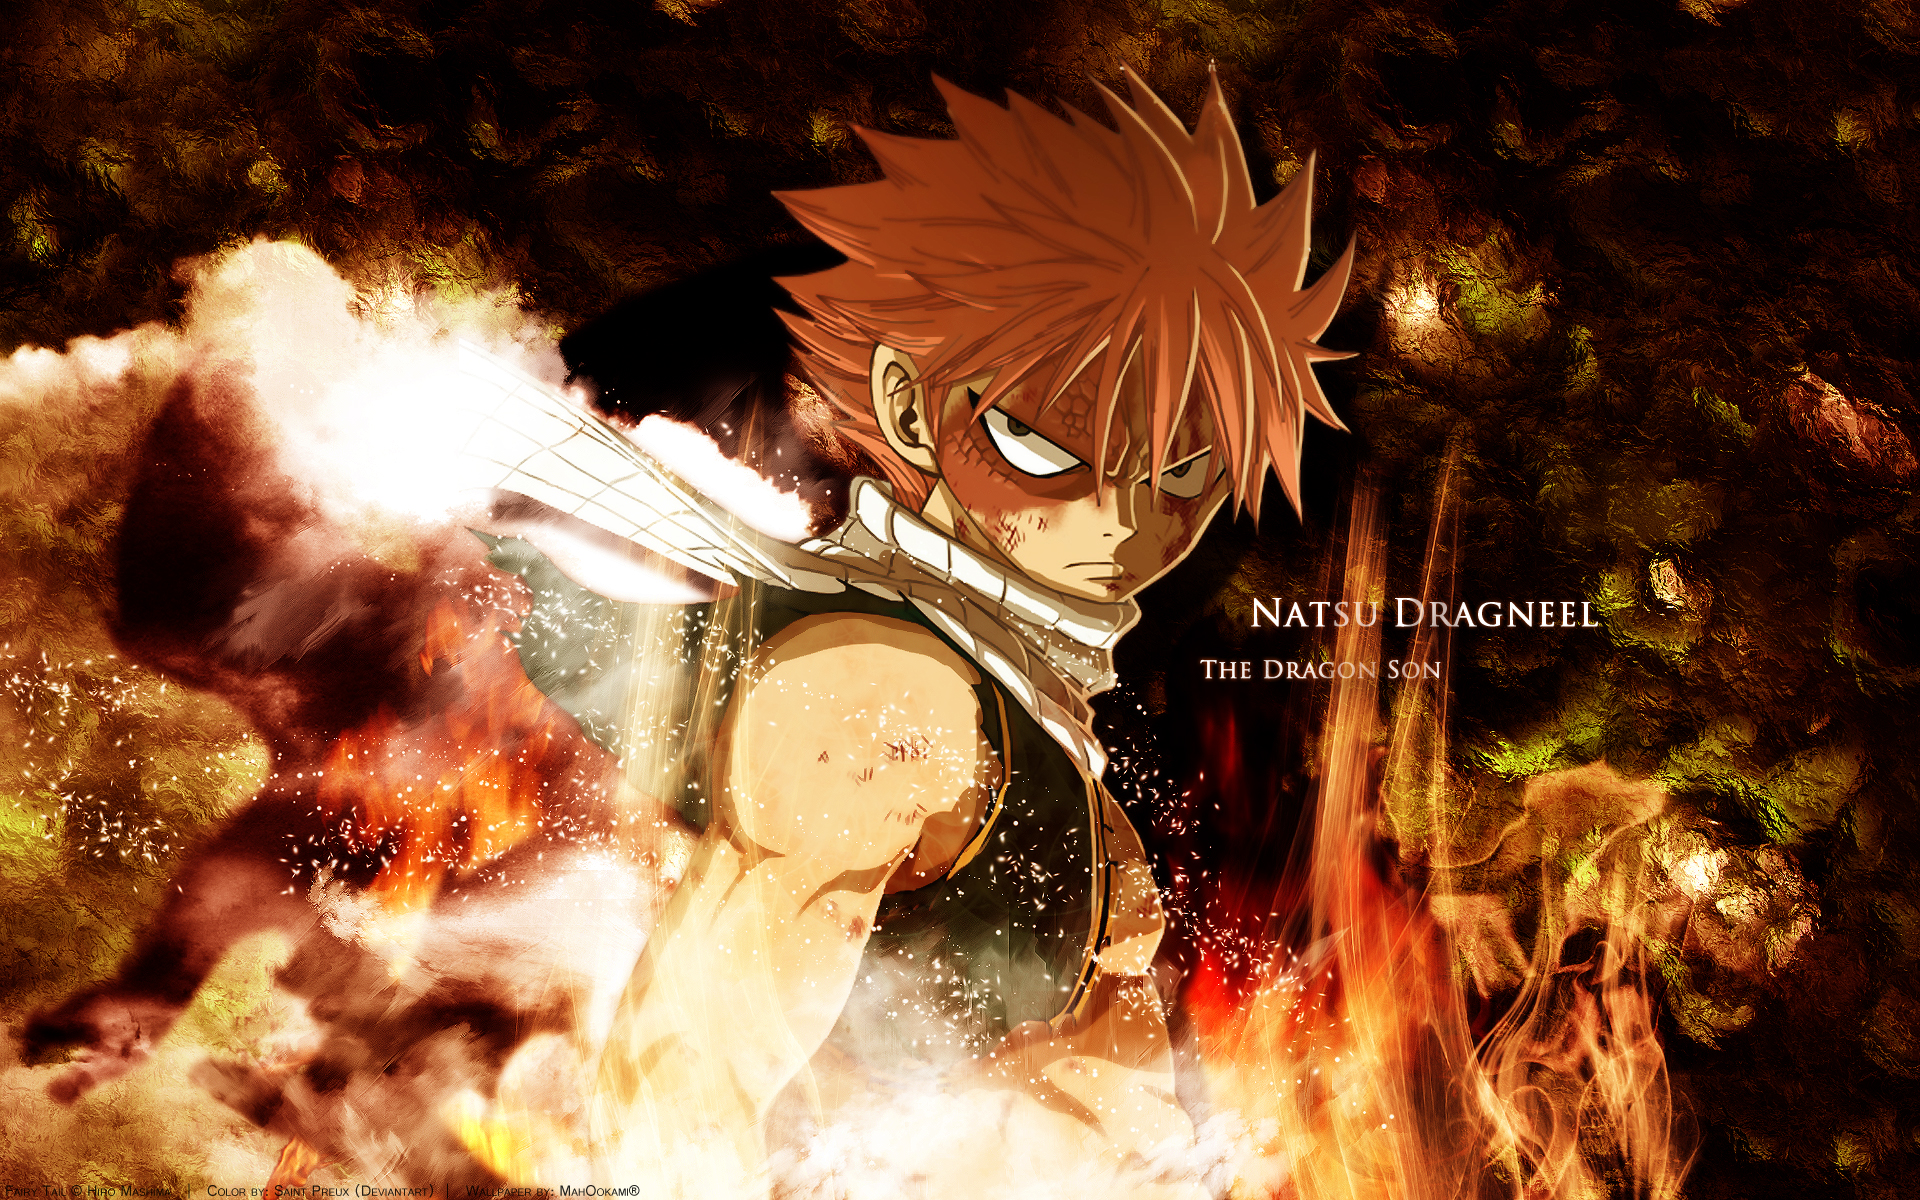 20 fairy tail wallpapers anime allhdwallpapers - Anime wallpaper hd iphone 7 ...